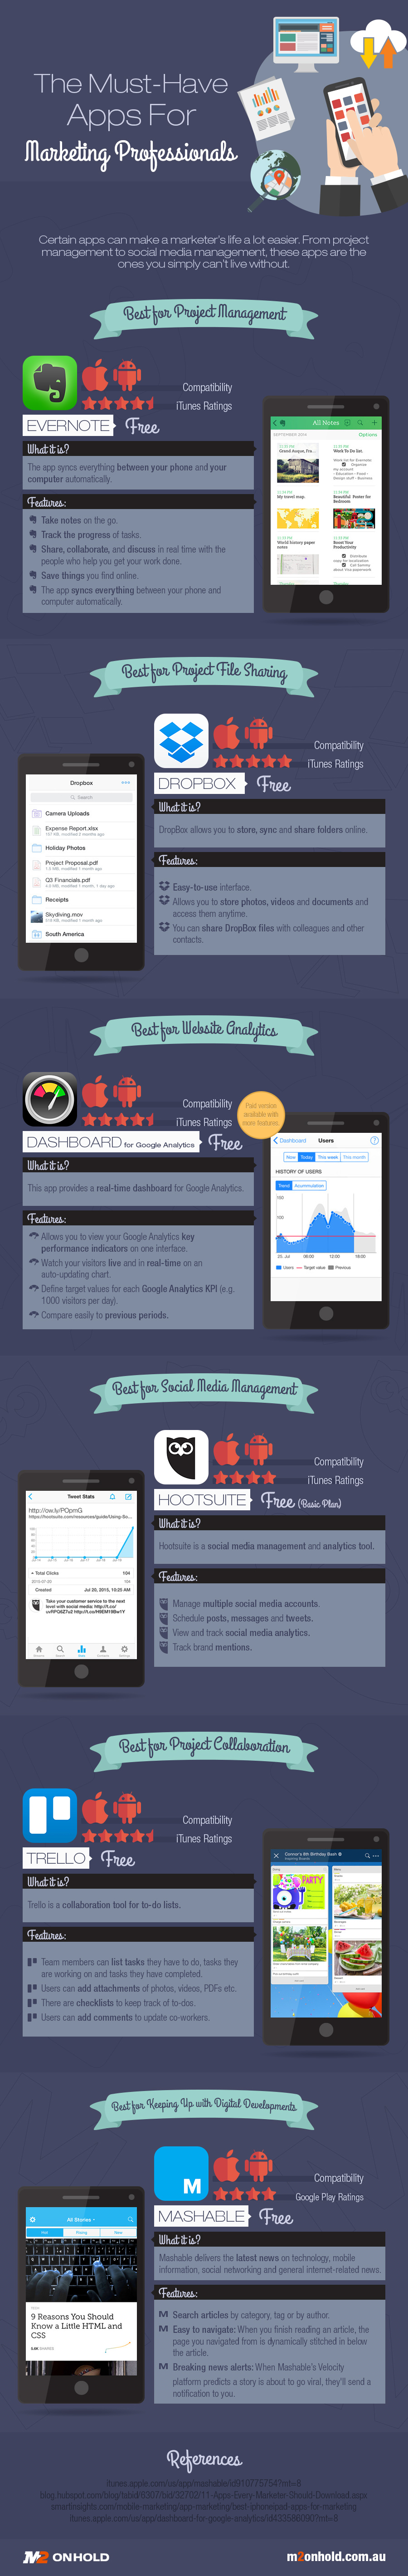 The Must-Have Apps for Marketing Professionals [INFOGRAPHIC]